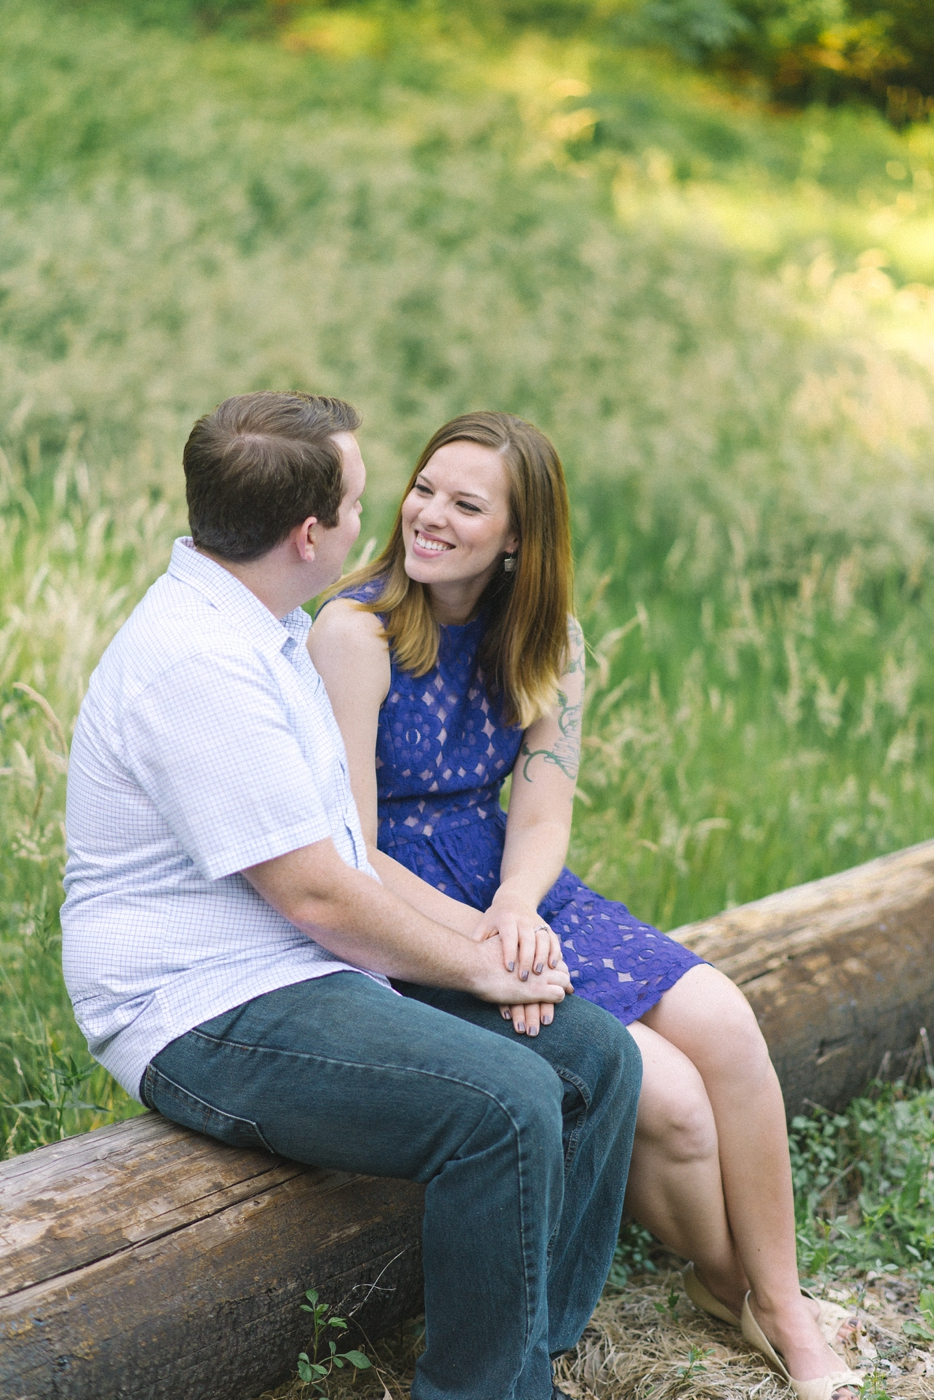 engagement-photography-portland-oregon-hoyt-arboretum-washington-park-romantic-couples-portraits-nature-natural-light-forest-field-shelley-marie-photo-5